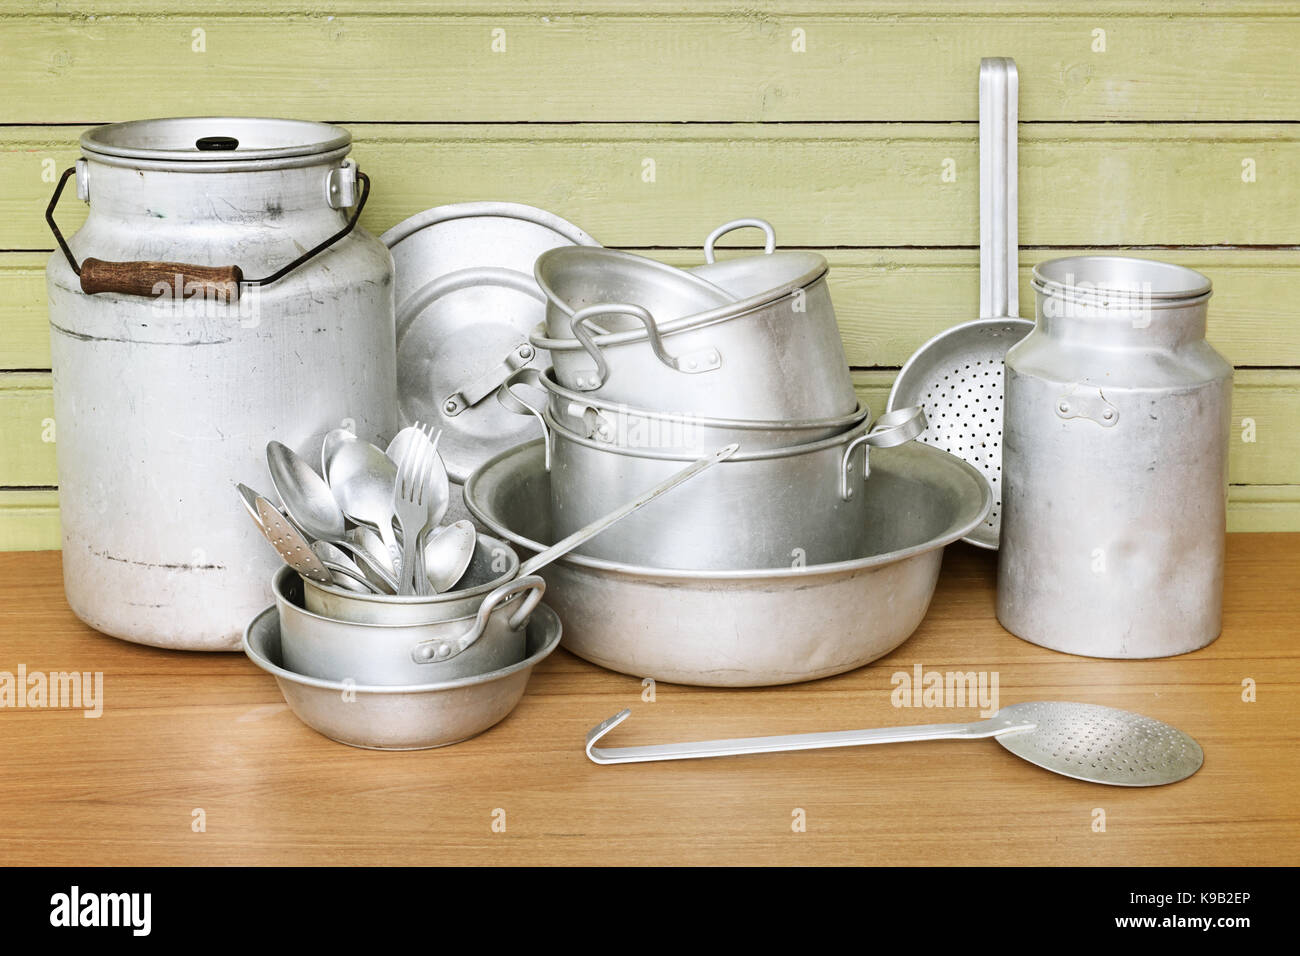 aluminum kitchen utensils. Brilliant Kitchen Old Aluminum Kitchen Utensils Are Saucepans Colanders Pan Pot Scoops  Spoons Forks On Aluminum Kitchen Utensils E